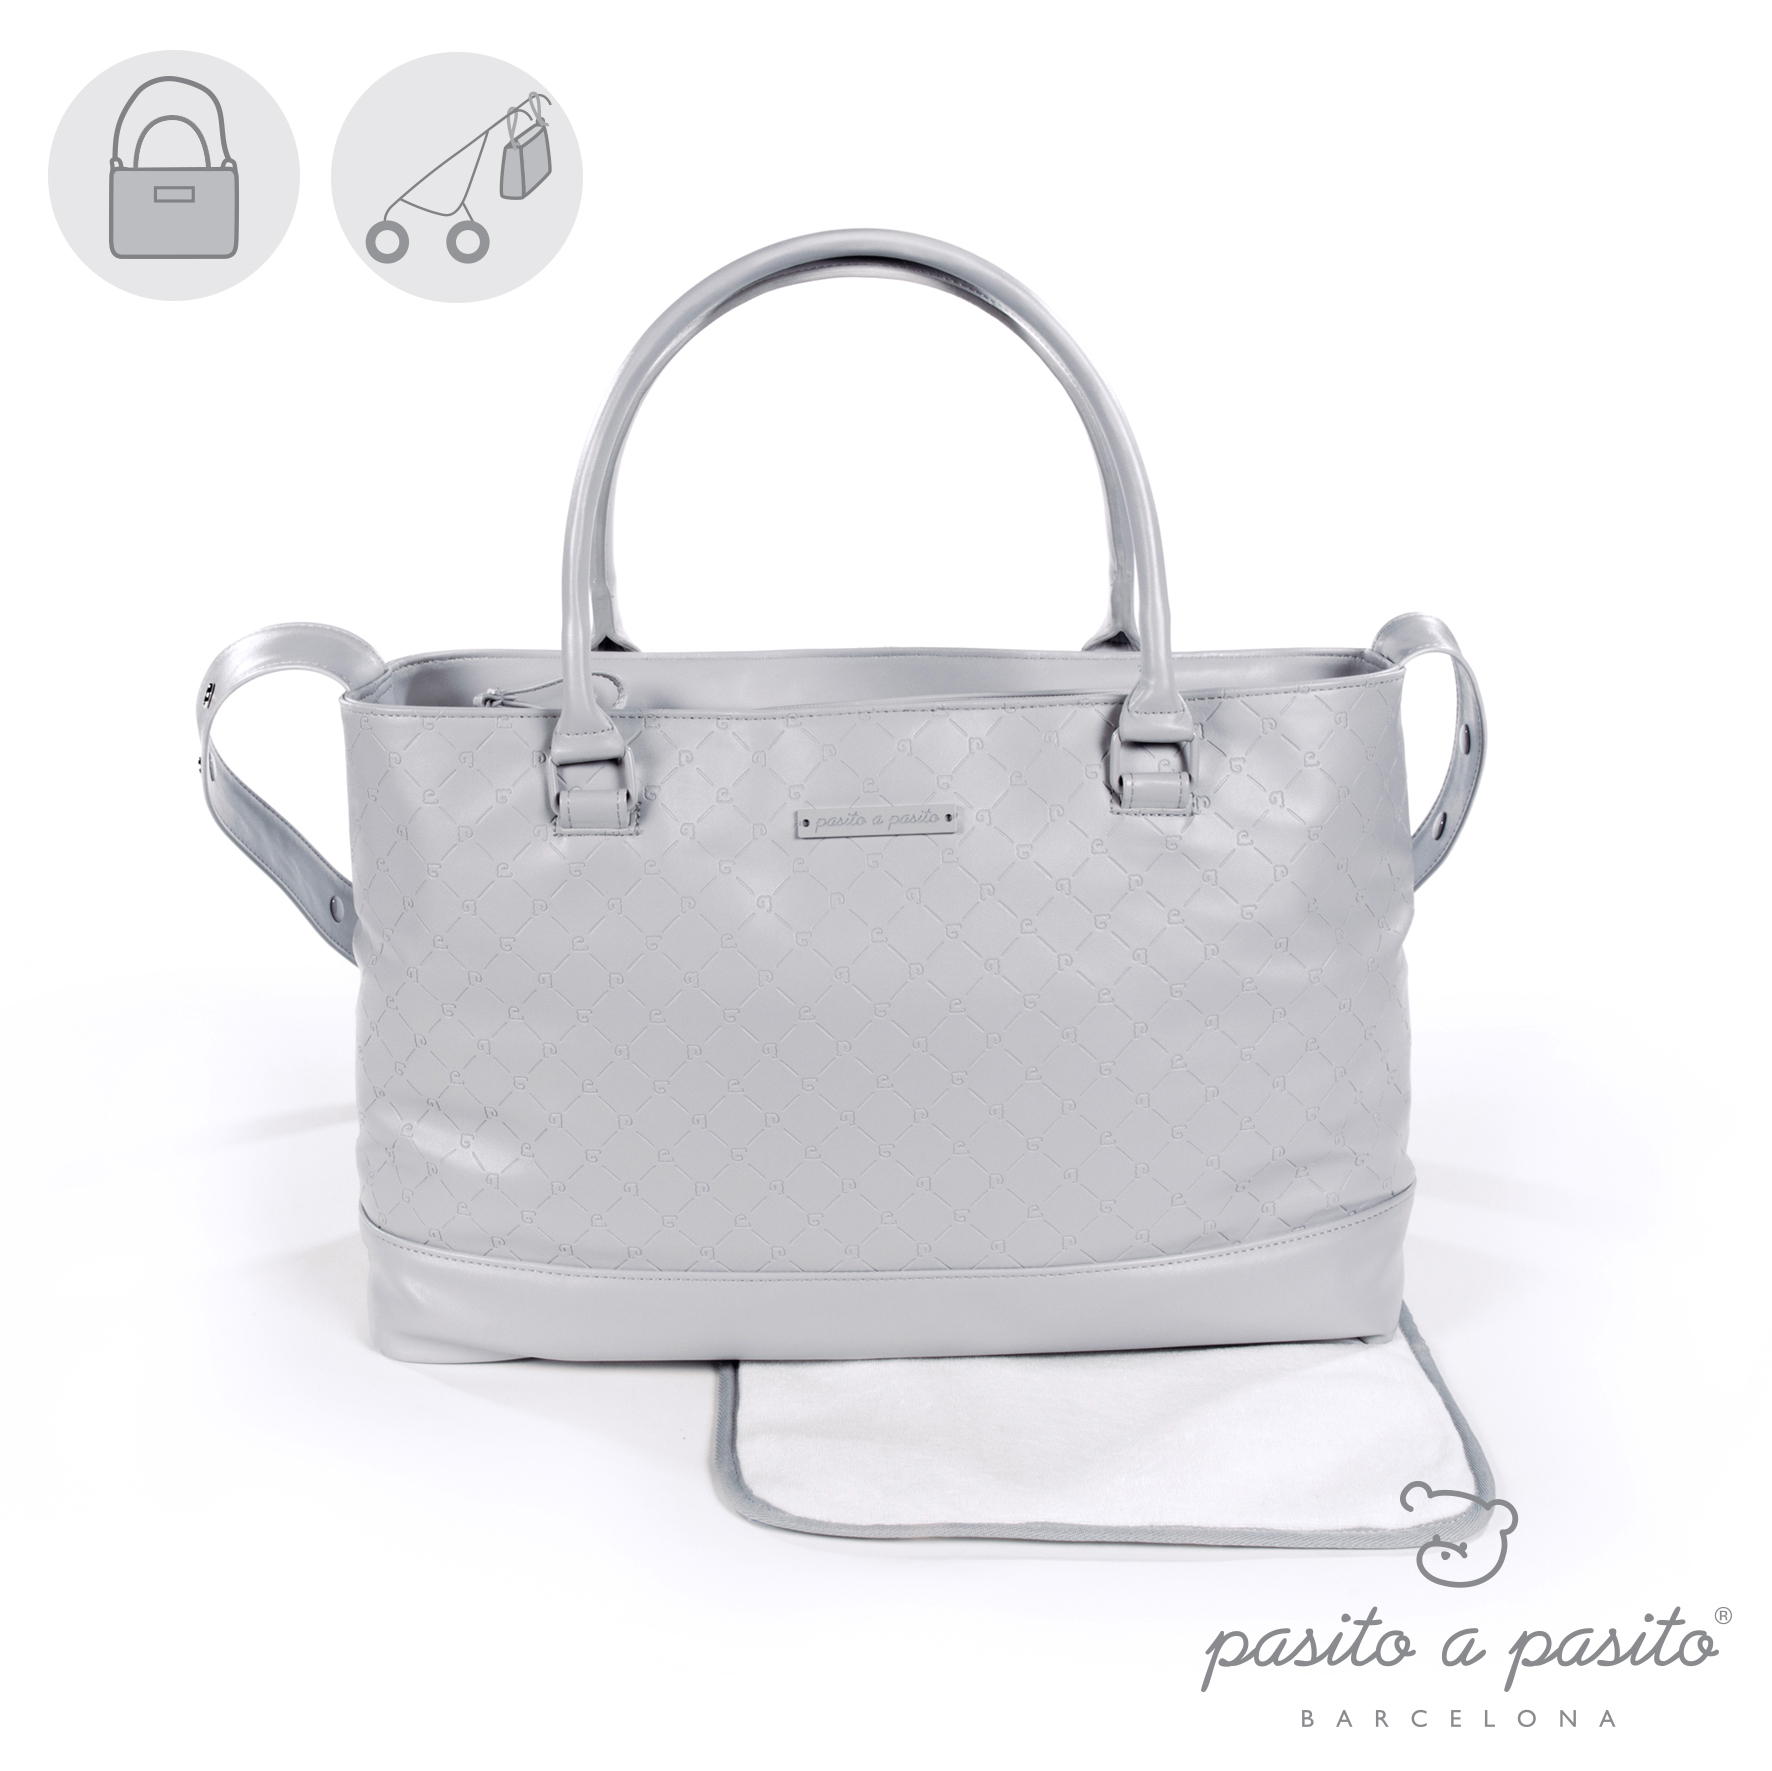 PASITO A PASITO NORMANDY GREY CHANGING BAG